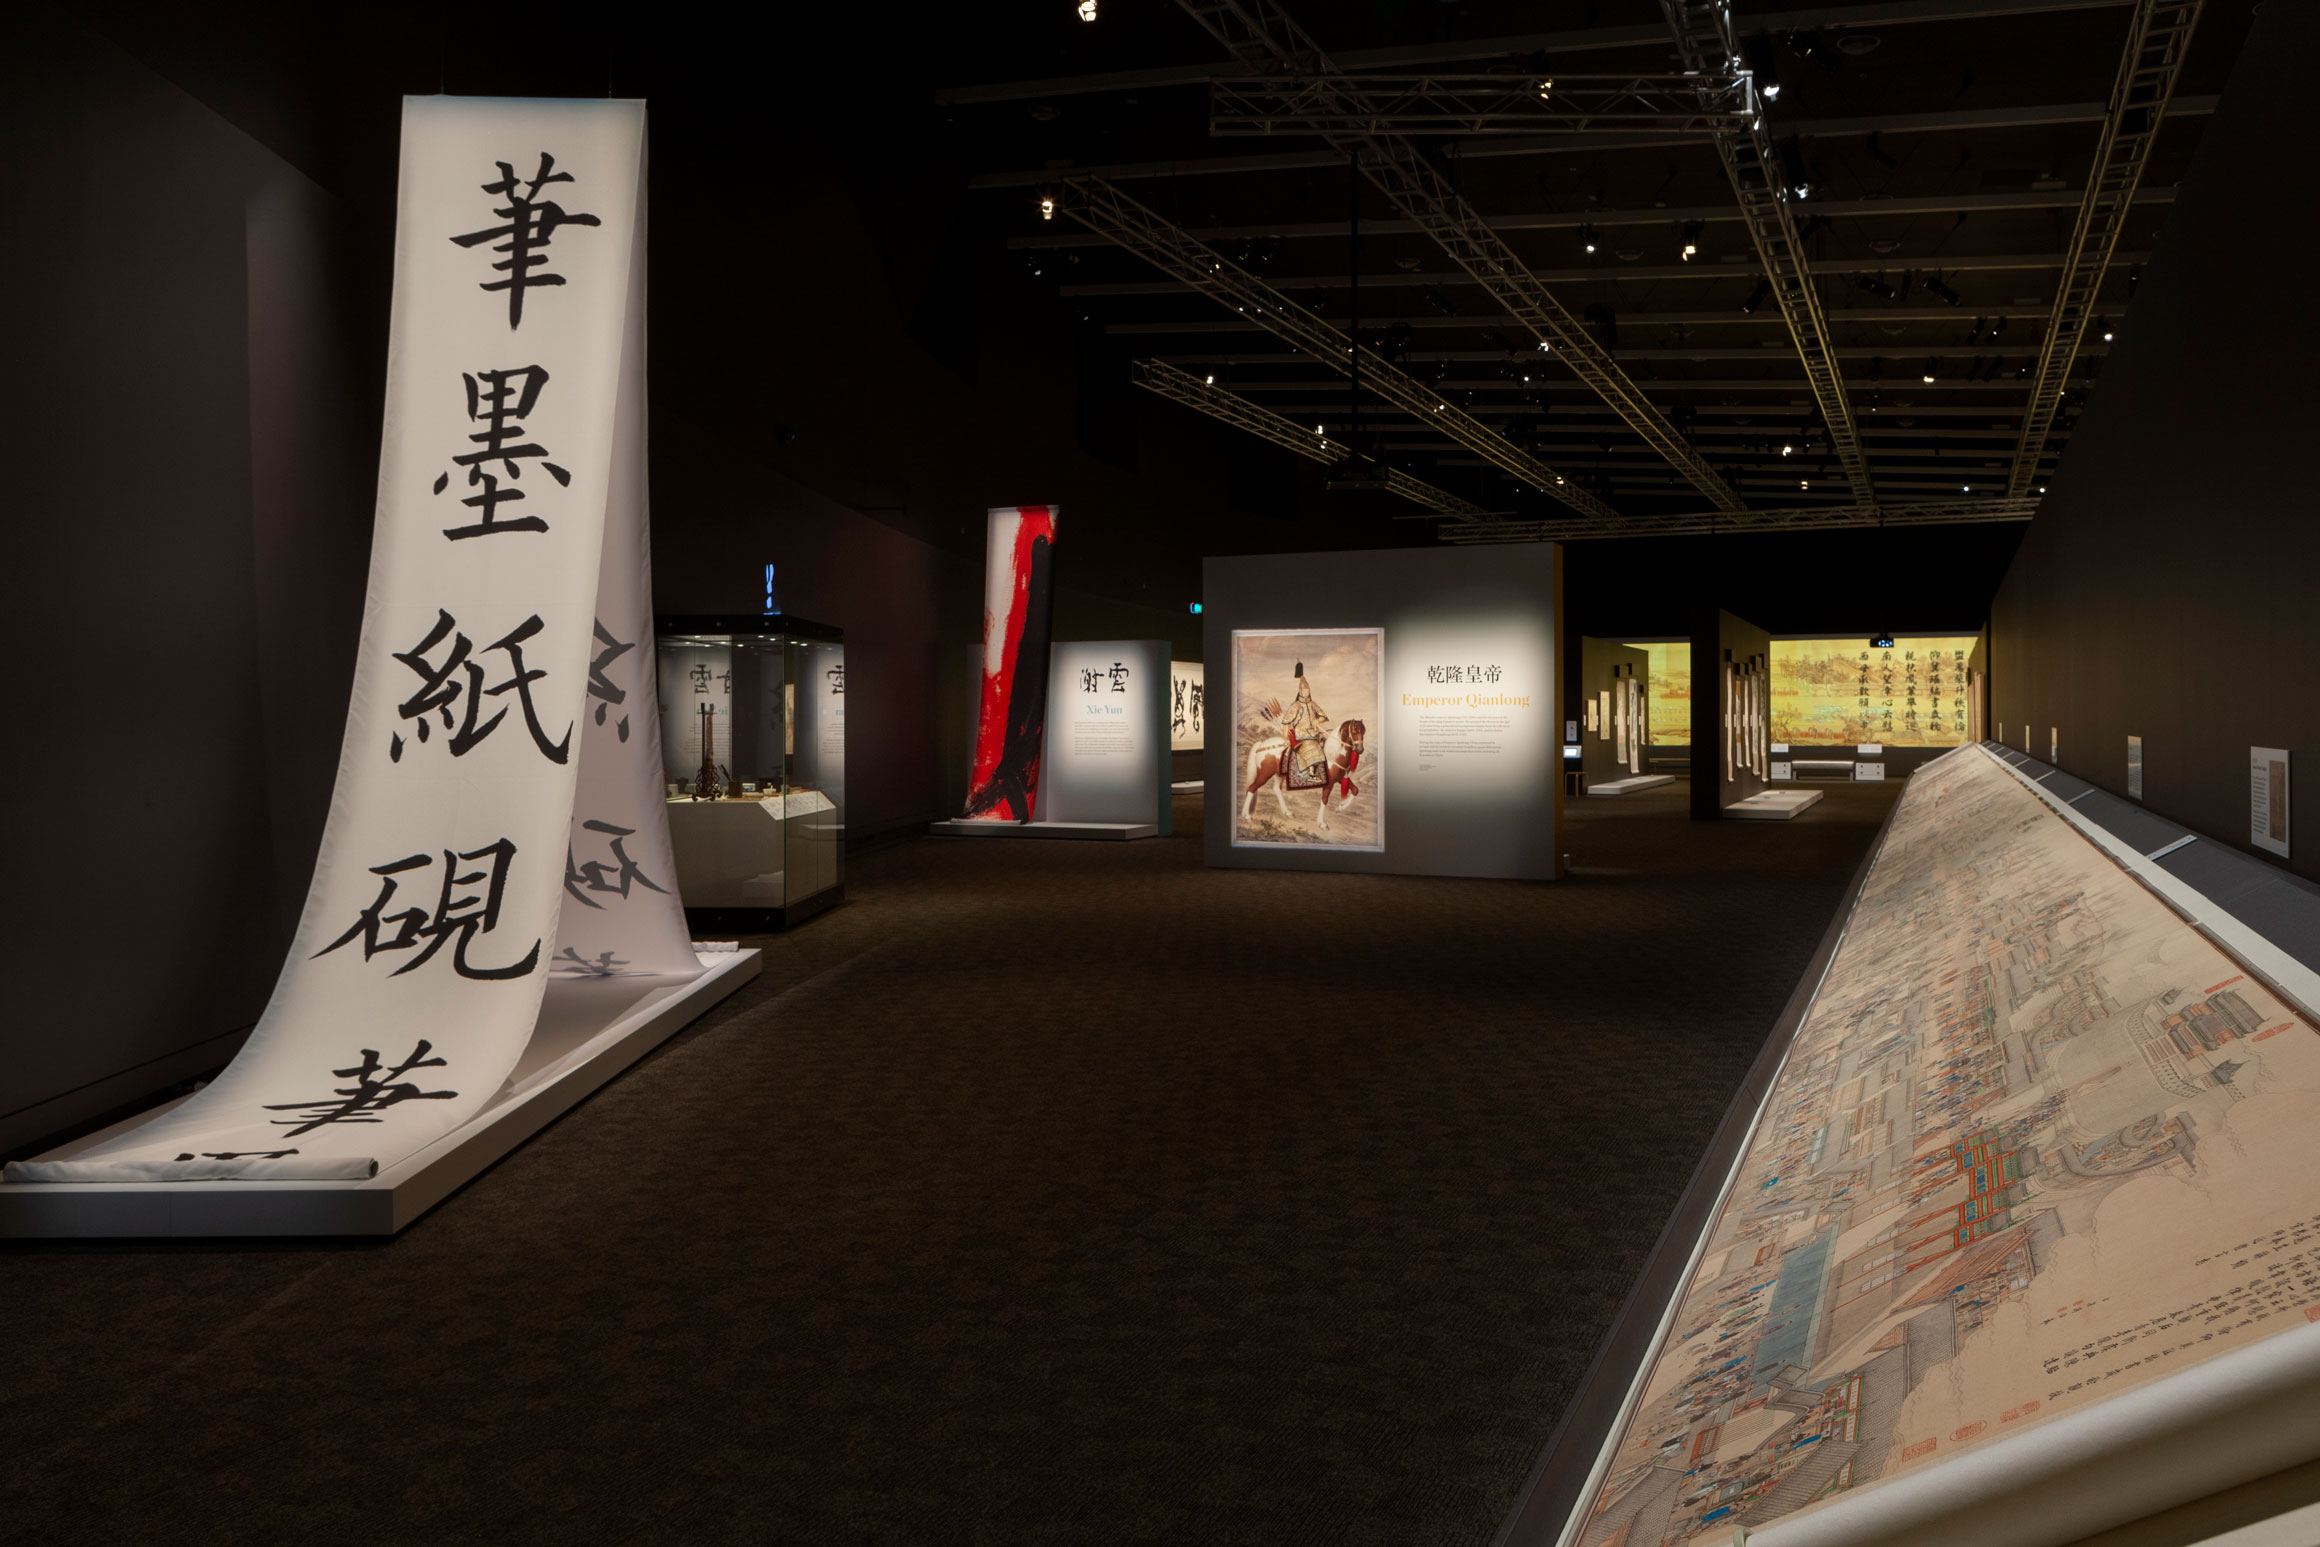 Chinese calligraphy exhibition at the NMA